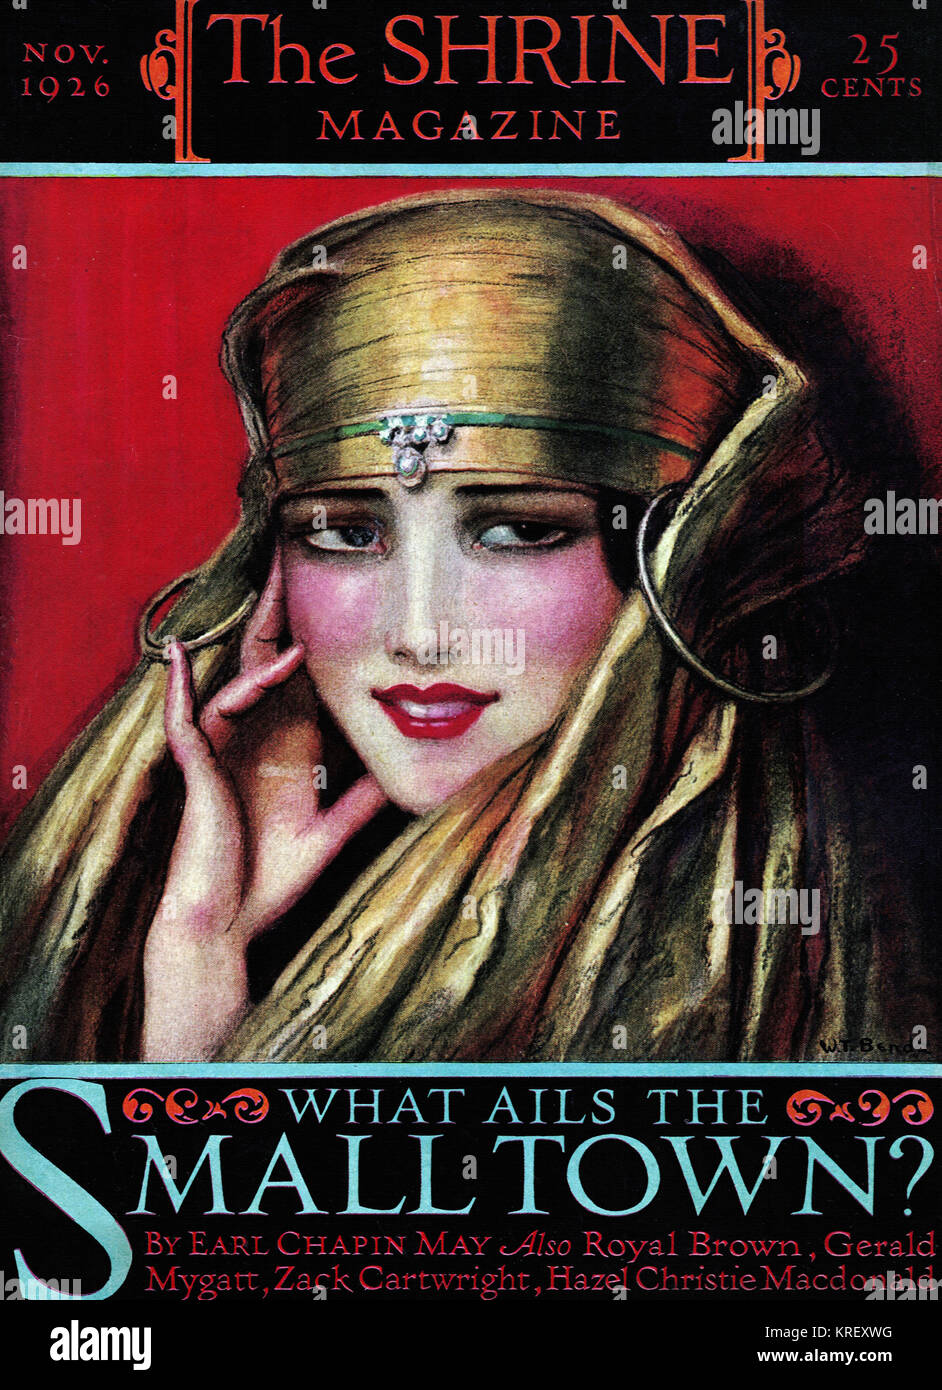 The Shrine Magazine - November 1926 - Stock Image